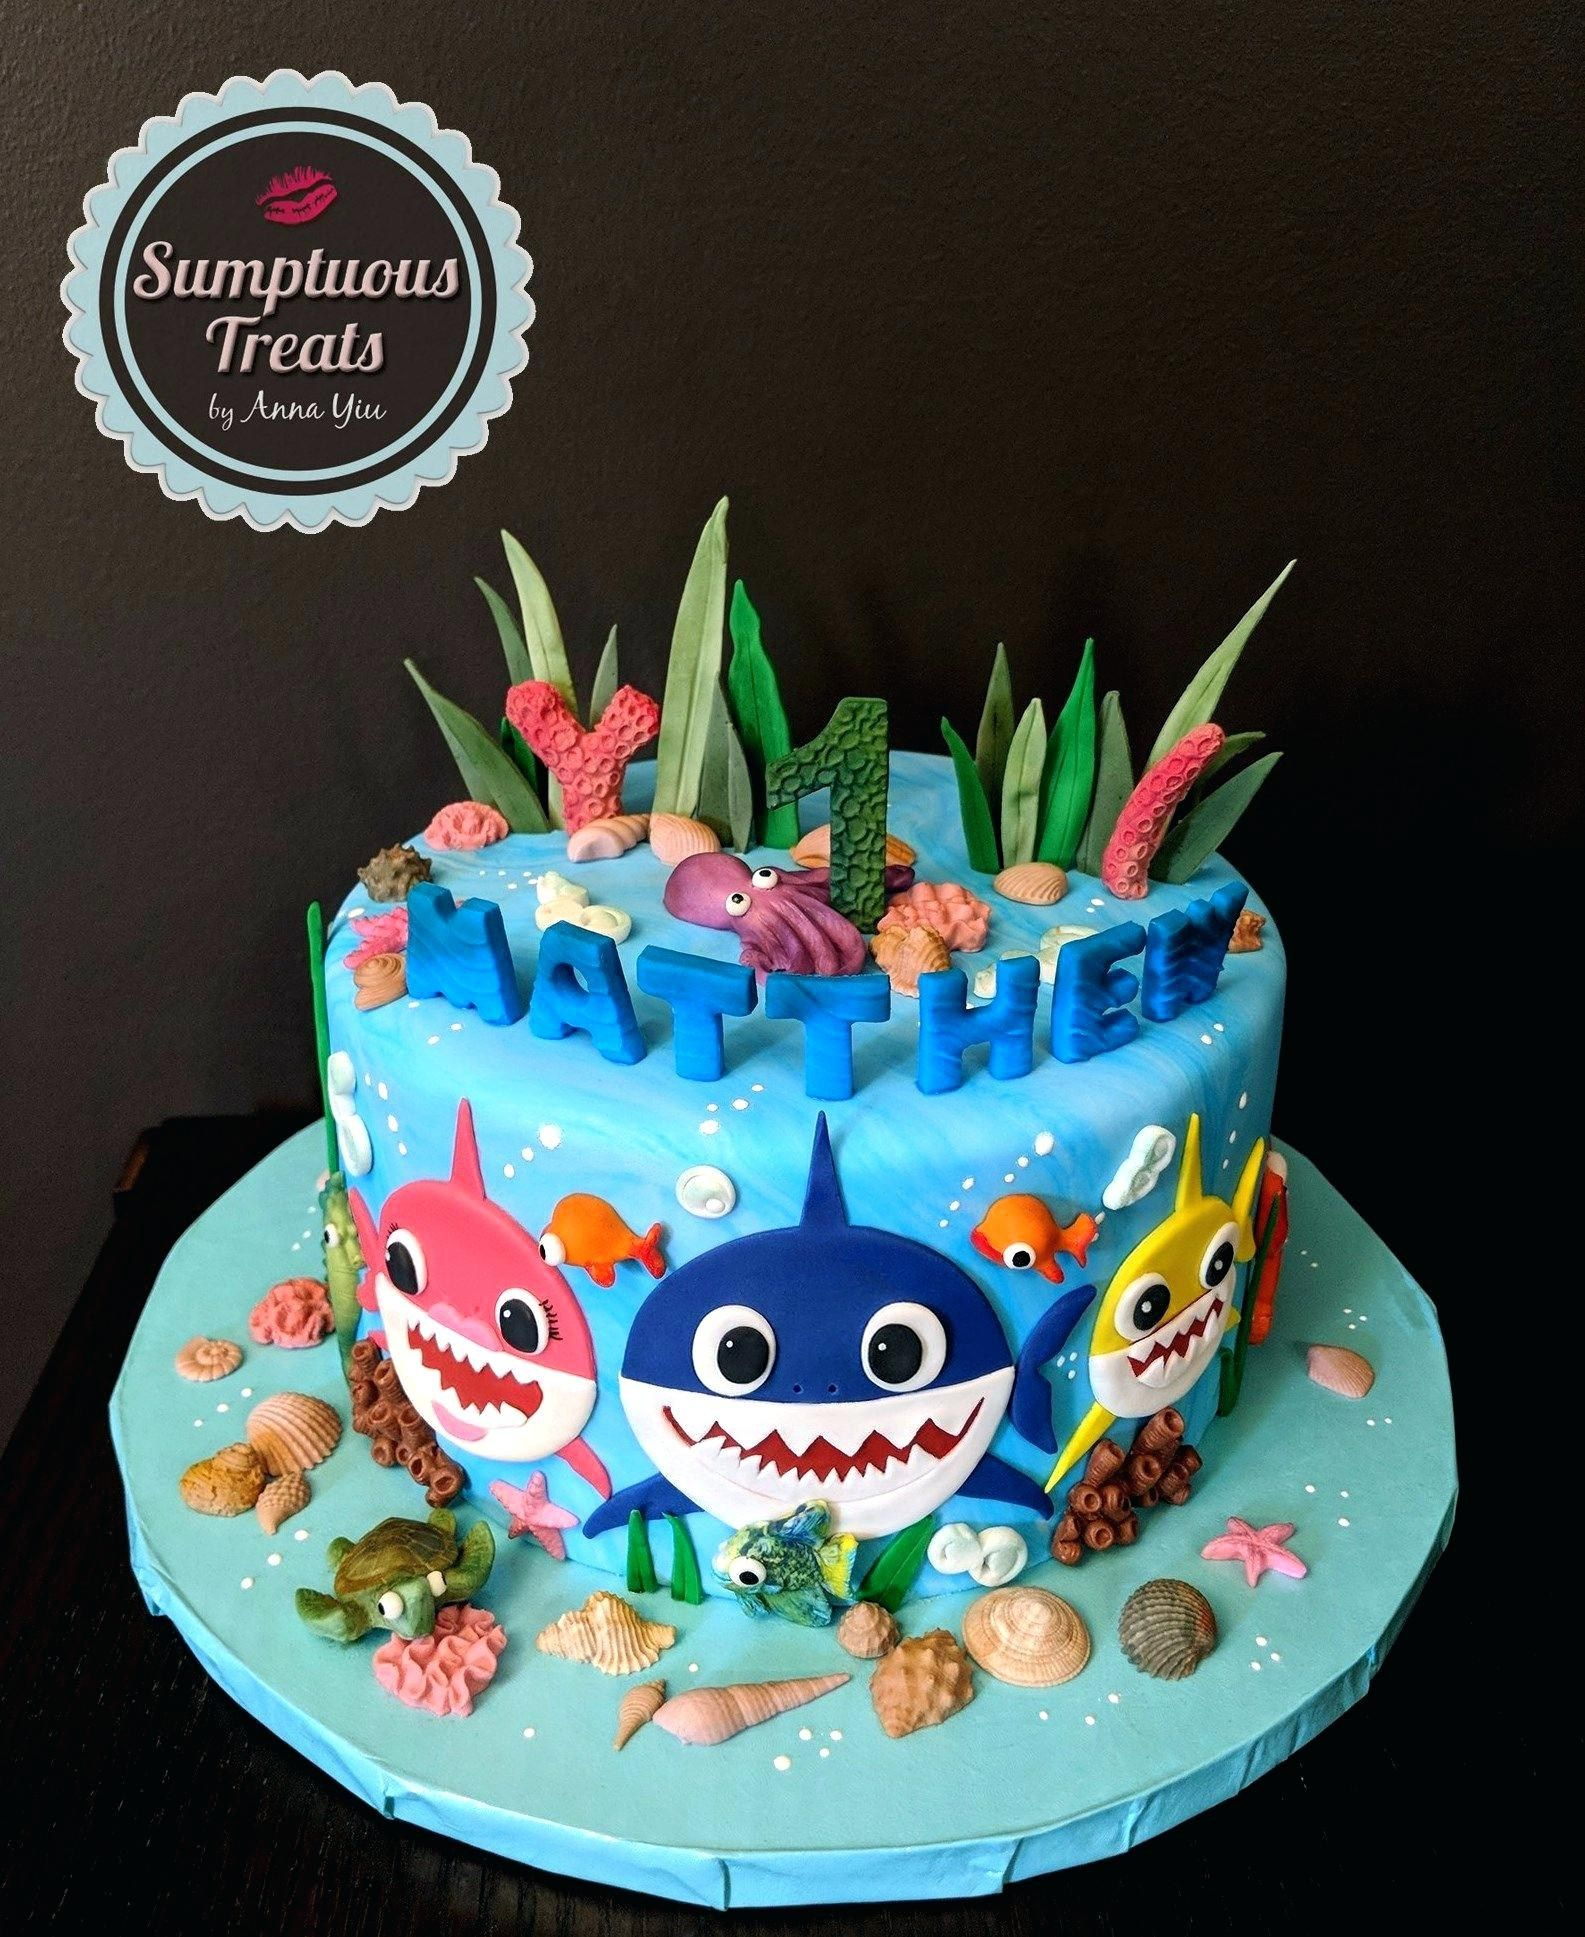 20 Awesome Image Of Shark Birthday Cake With Images Shark